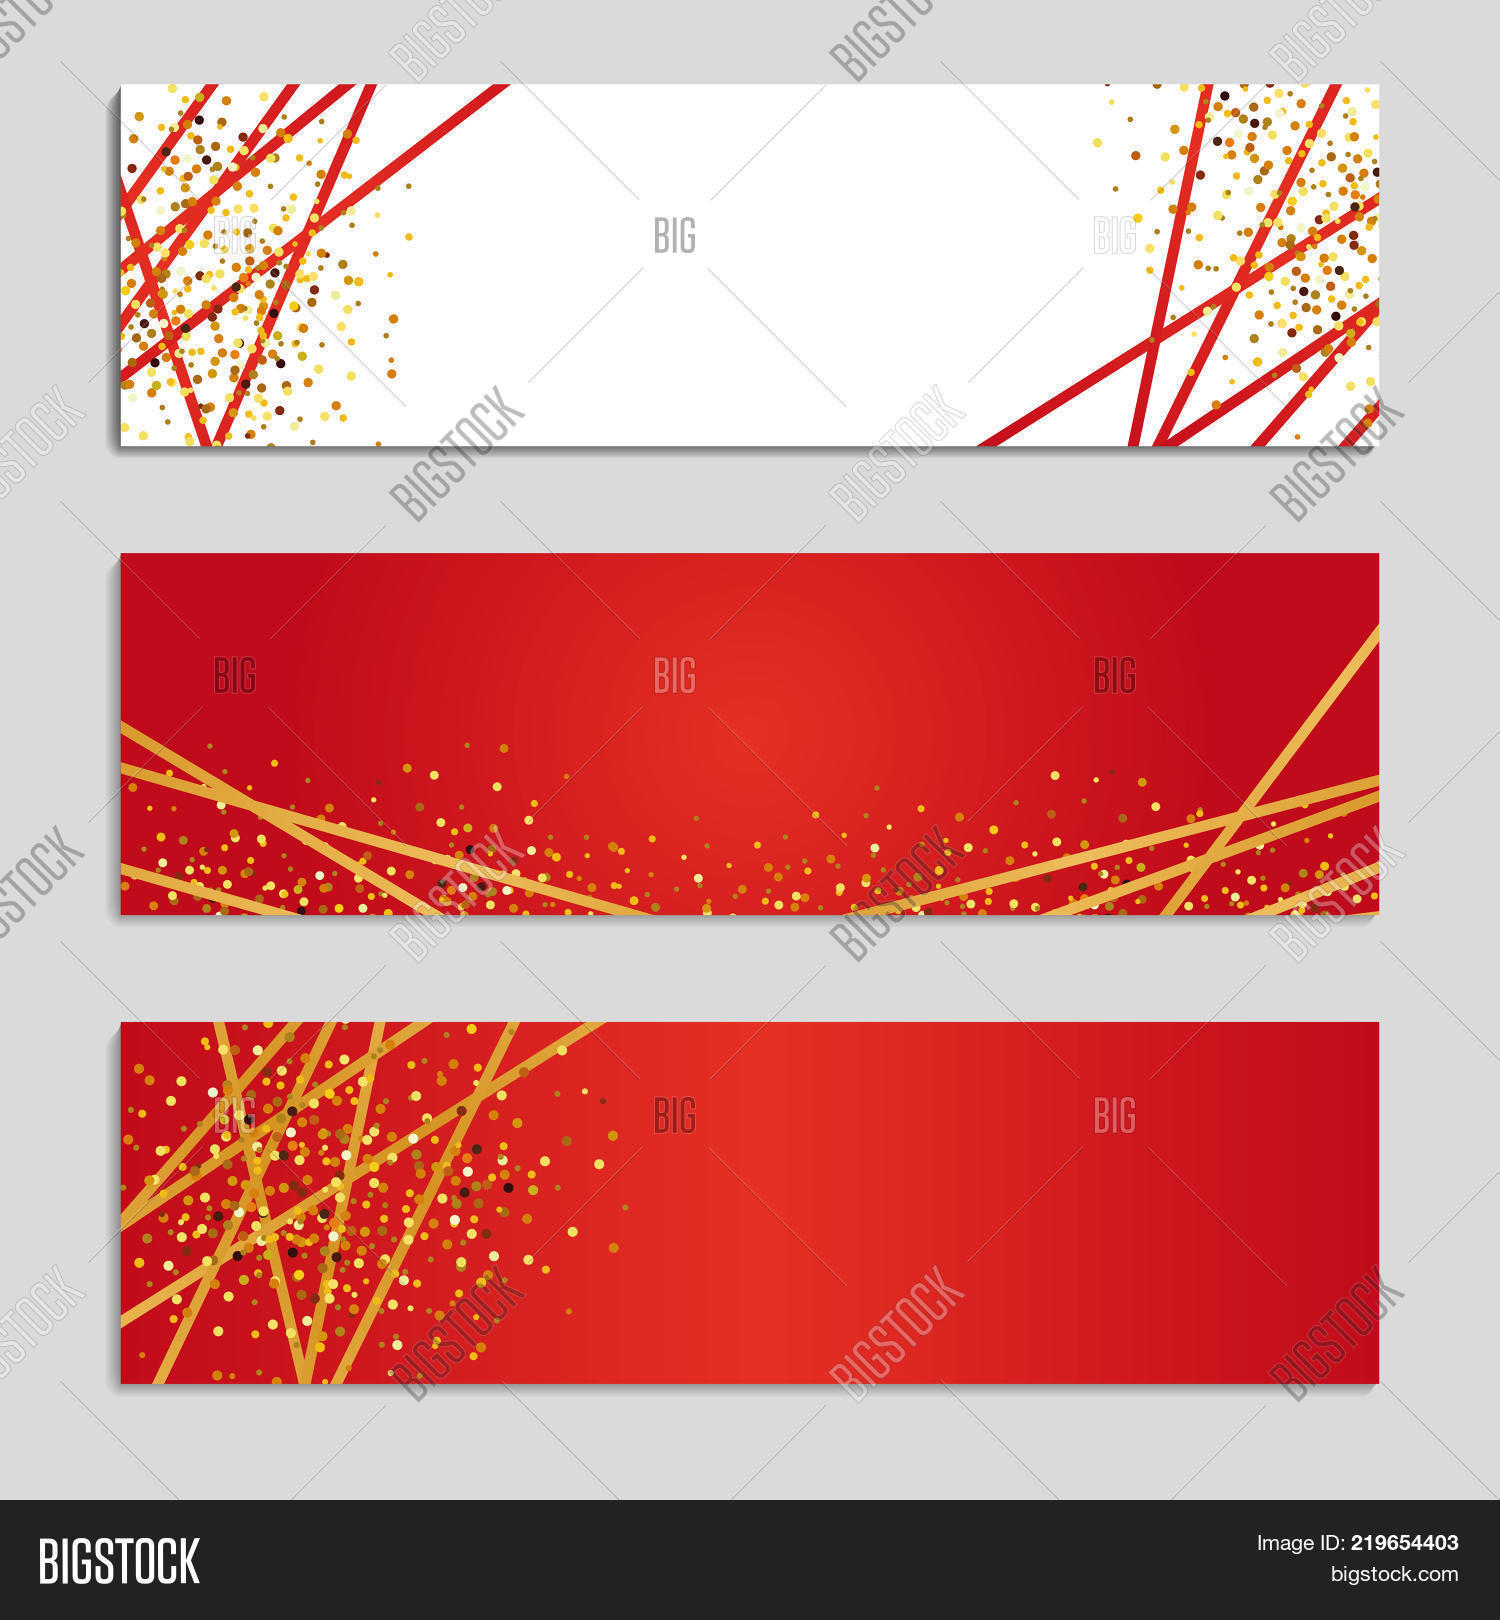 Gold Line Red Banners Image & Photo (Free Trial) | Bigstock